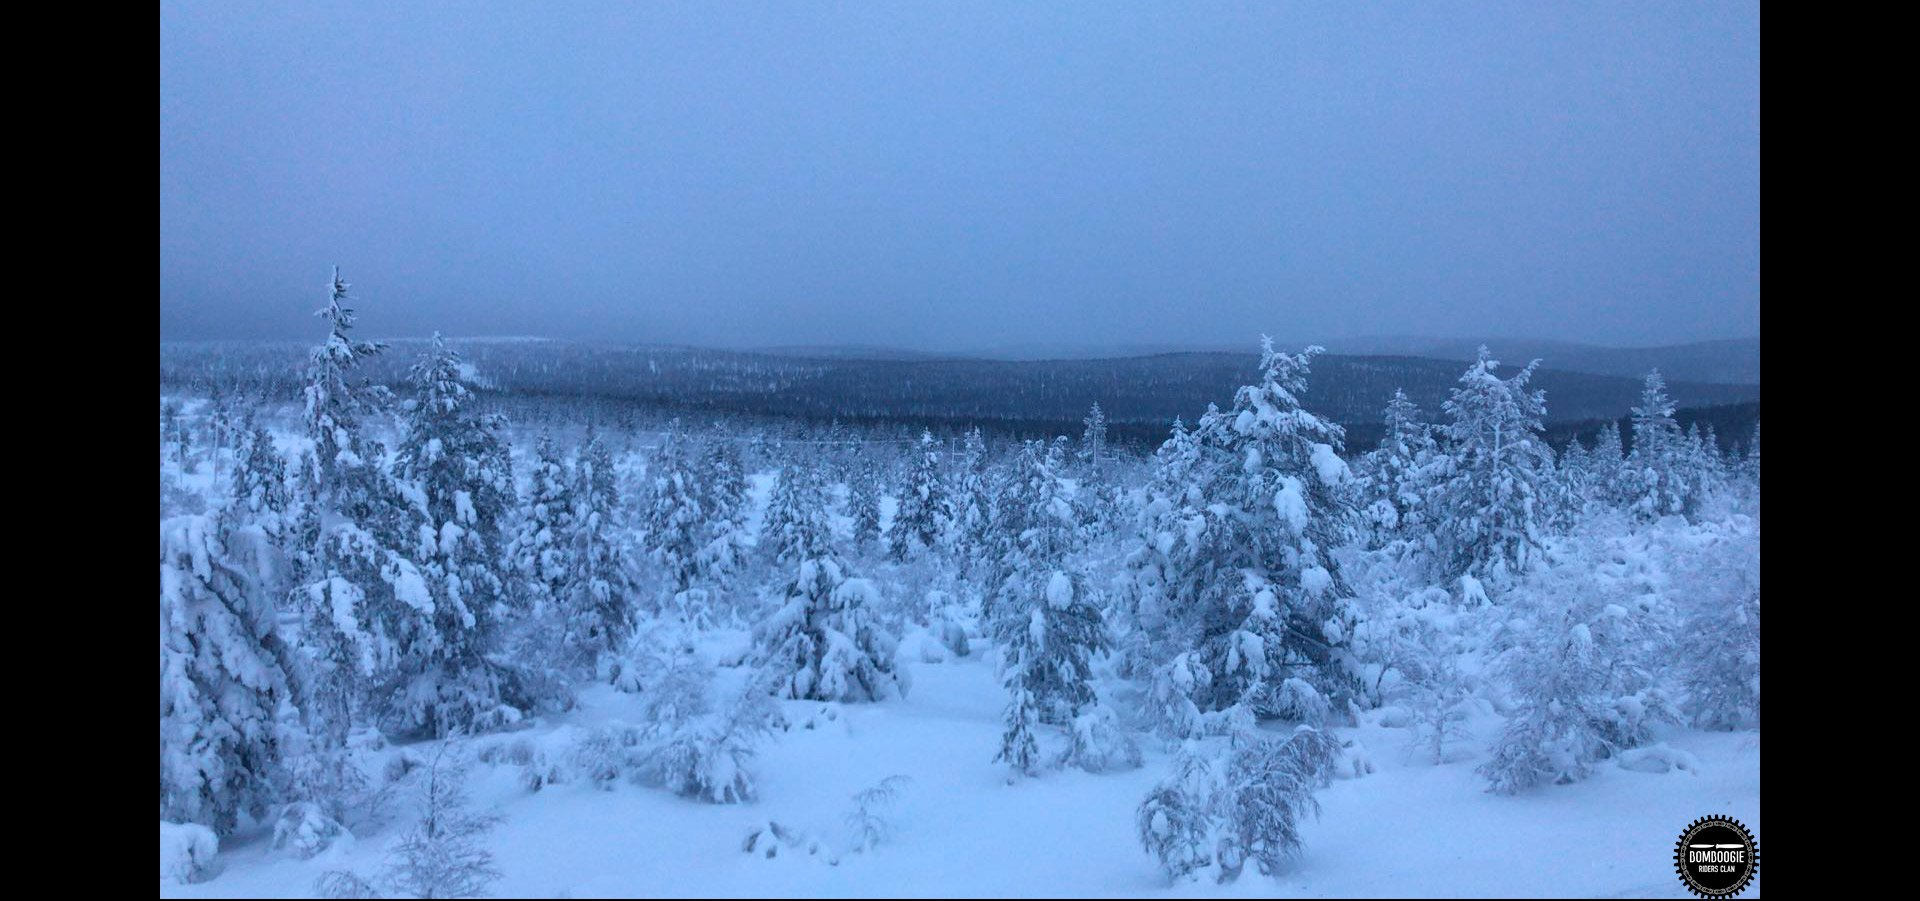 <font face='DIN Condensed'=white>  Lapland, Finland</font>